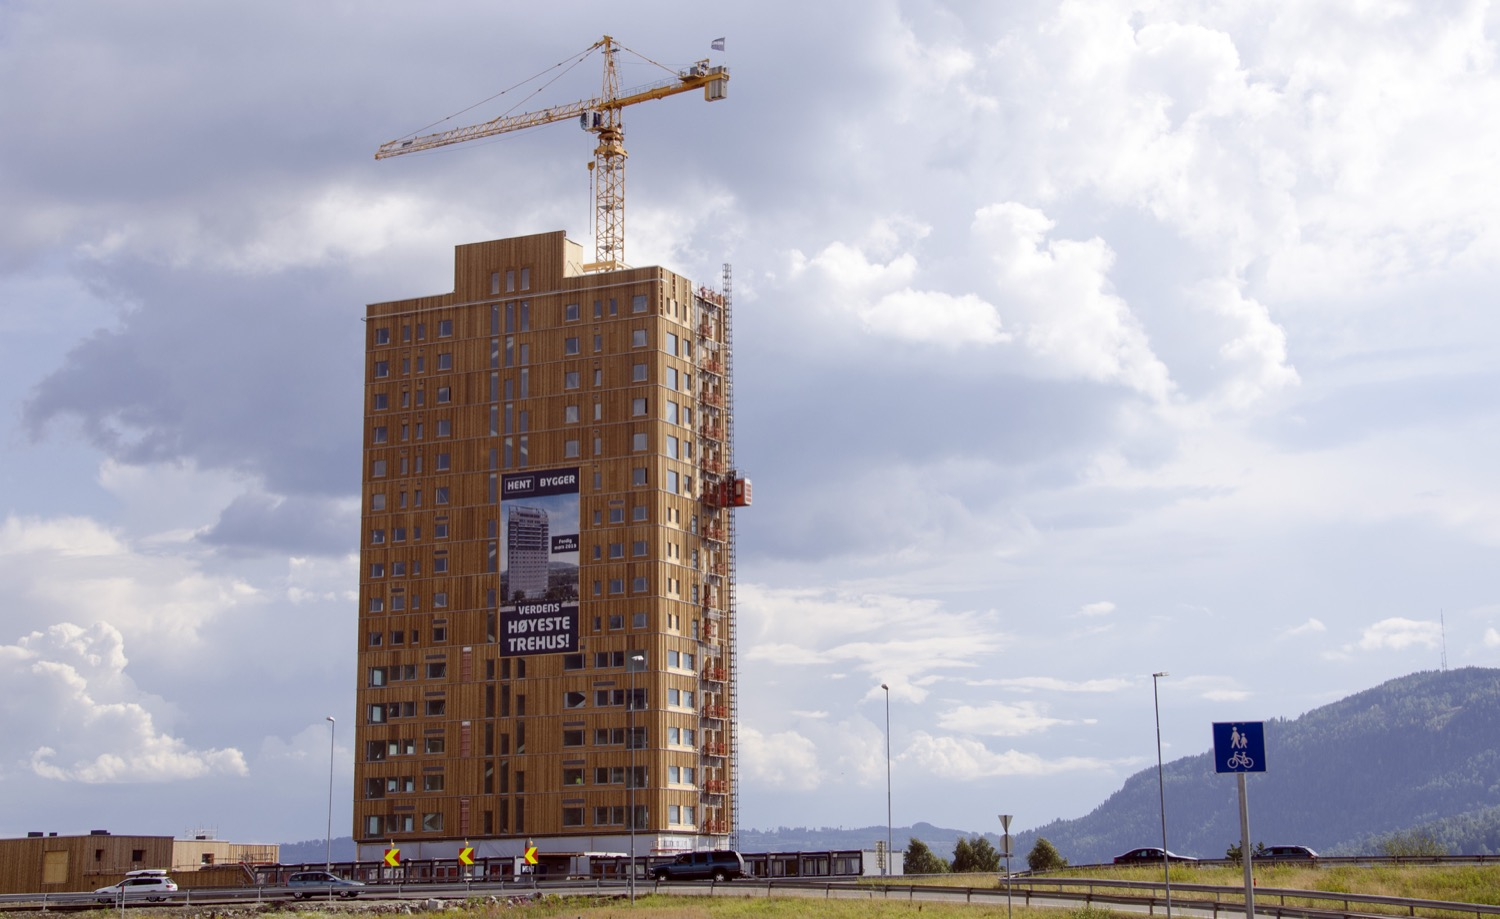 An 18-story tall wood building with a crane above it